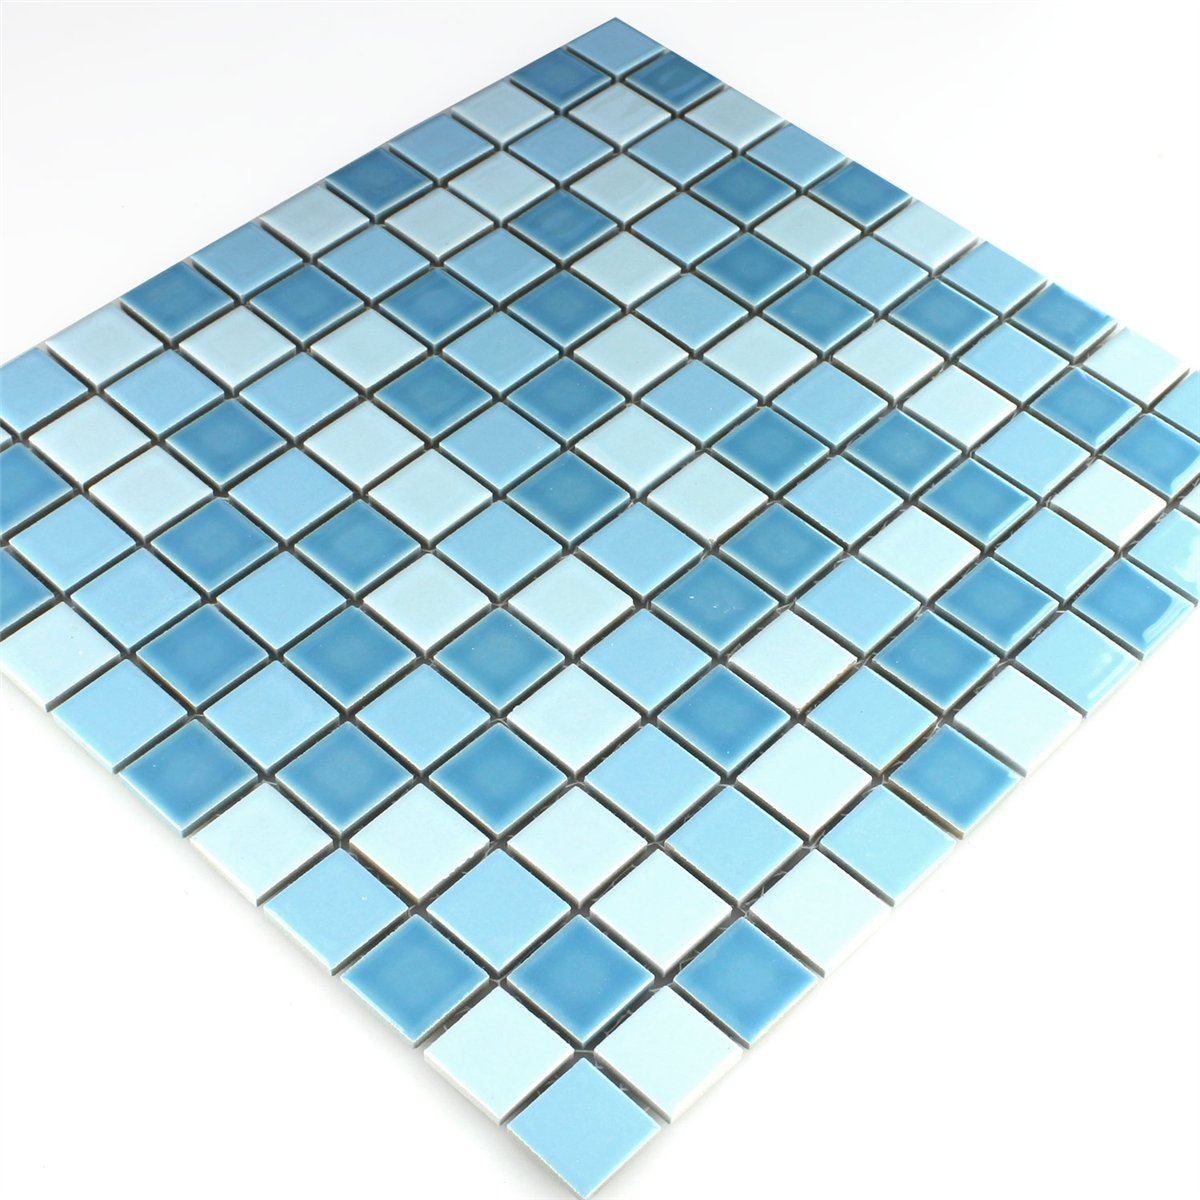 Ceramic Mosaic Tiles Blue Mix 25x25x5mm